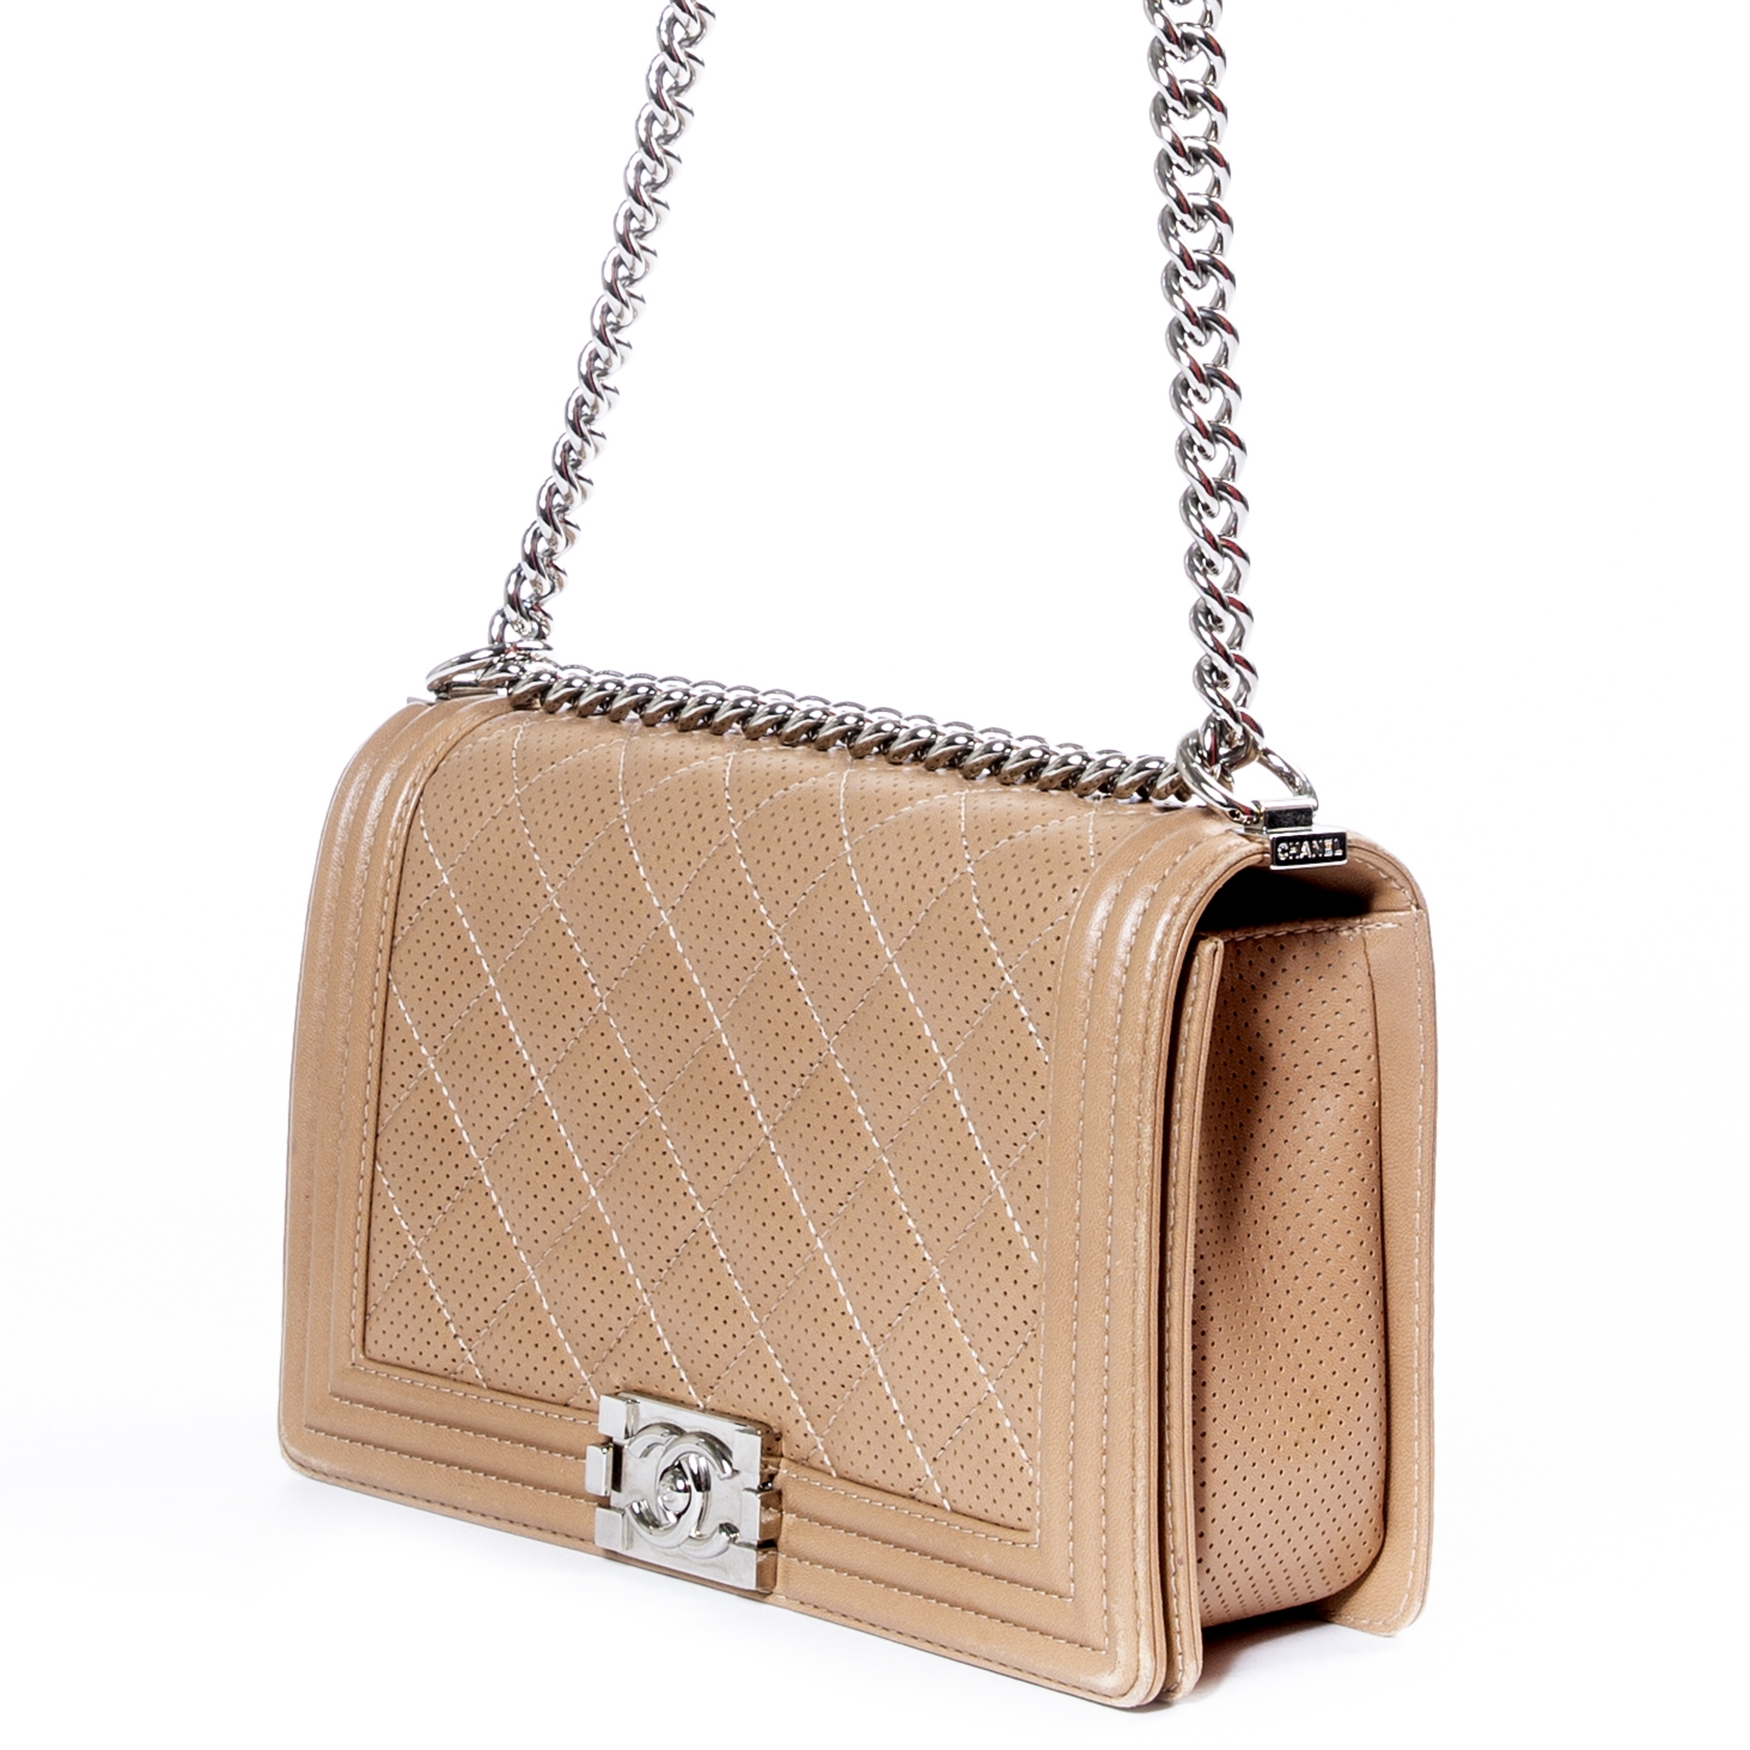 Are you interested in a Chanel Beige New Medium Boy Perforated Bag